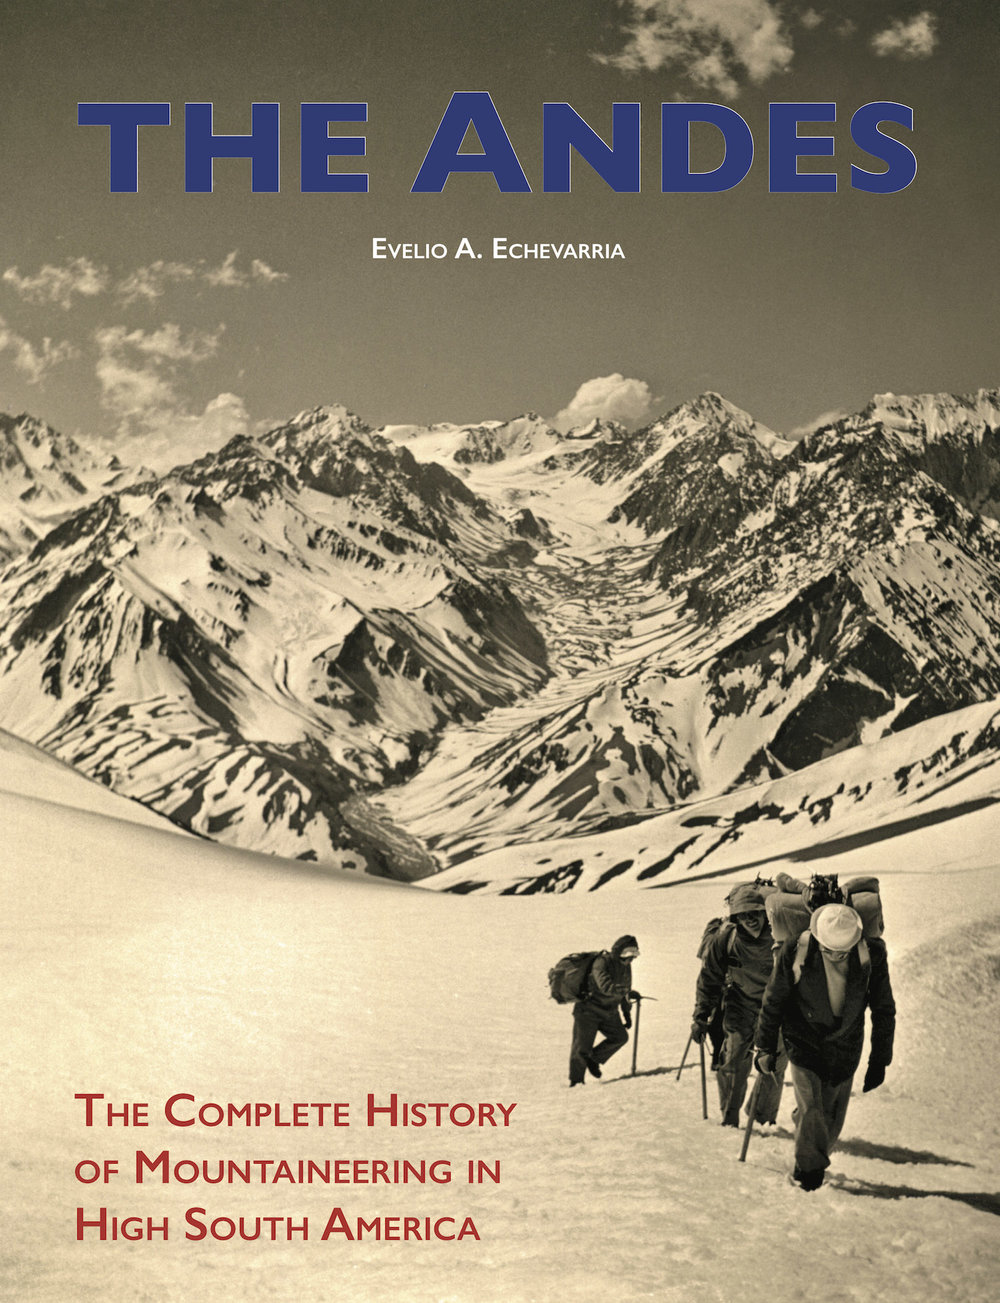 The Andes 2.jpg